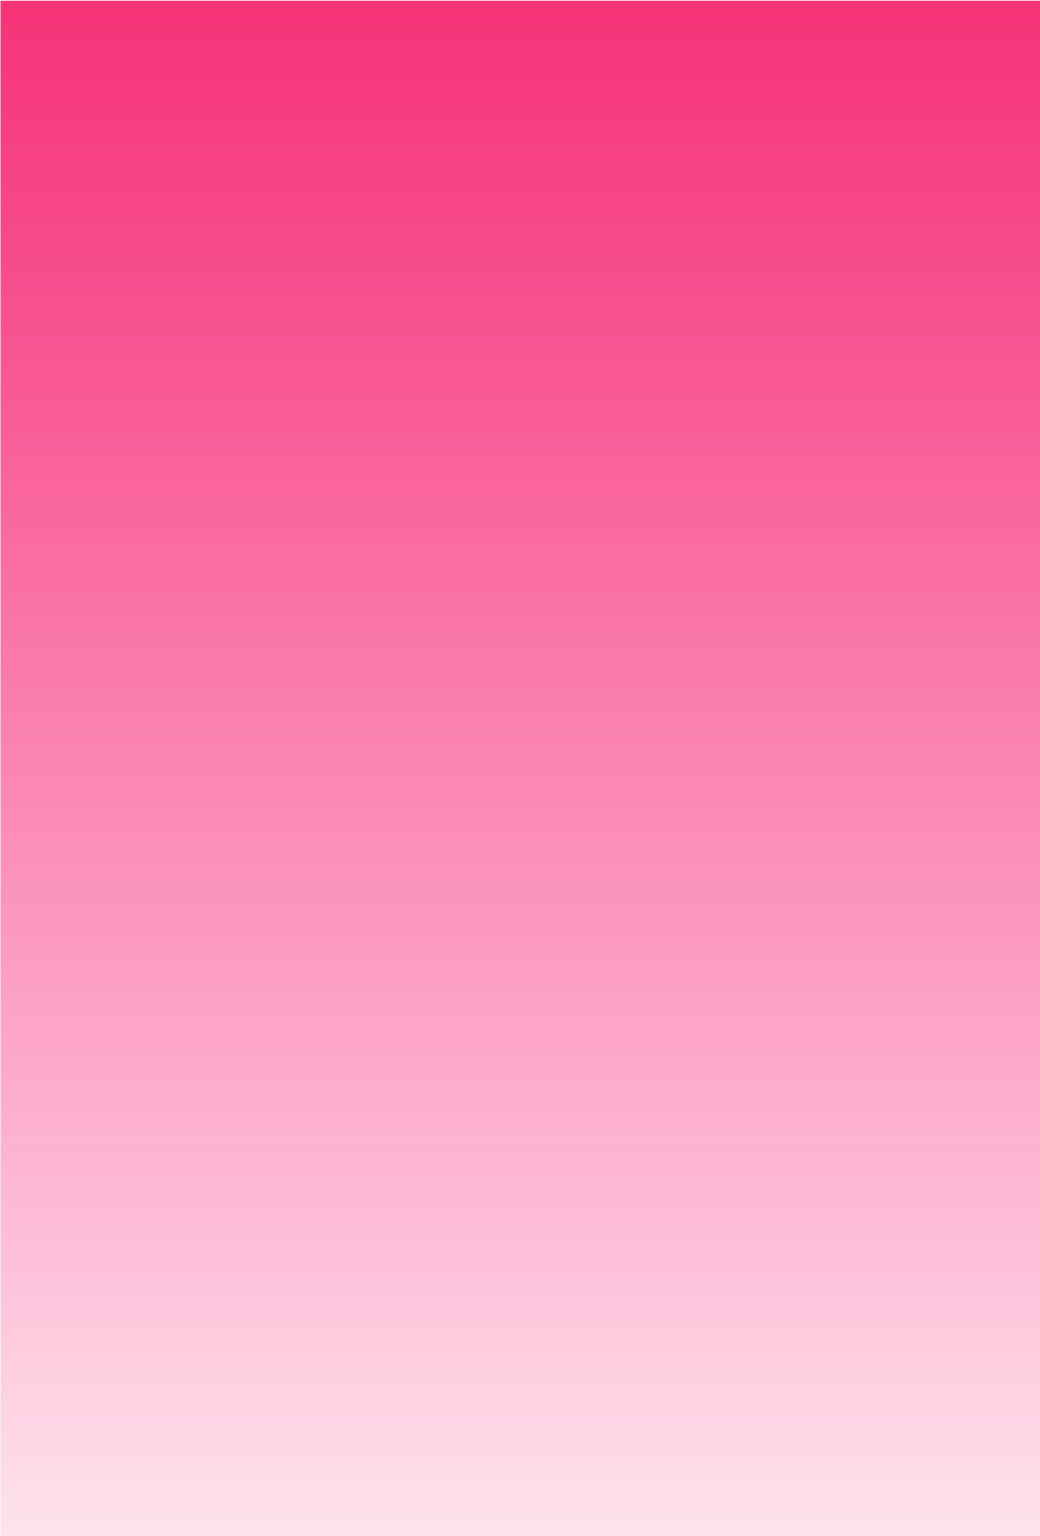 Pink Fade iPhone Ringtones 1040x1536